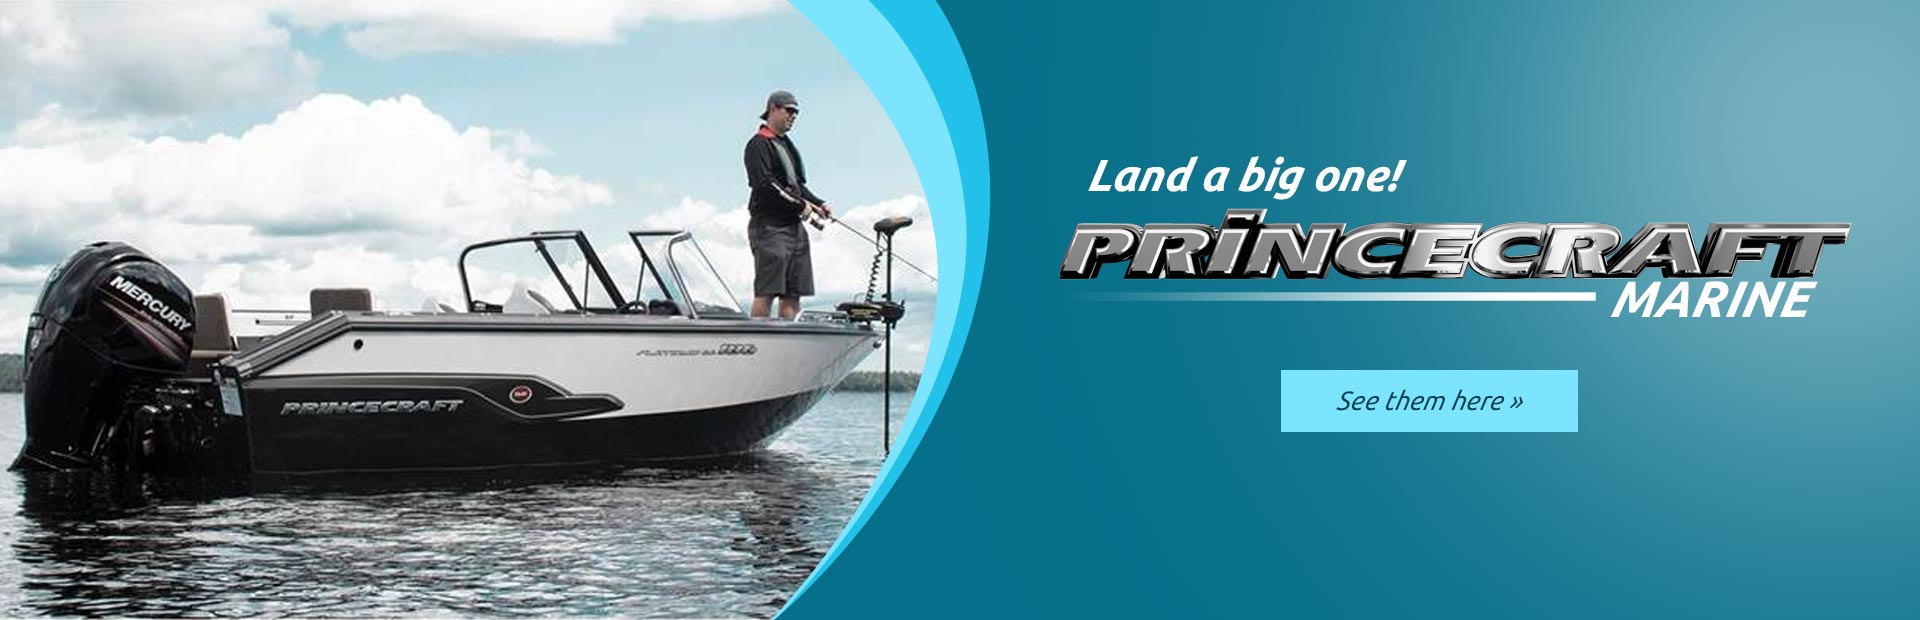 Princecraft Marine: Click here to view the models.